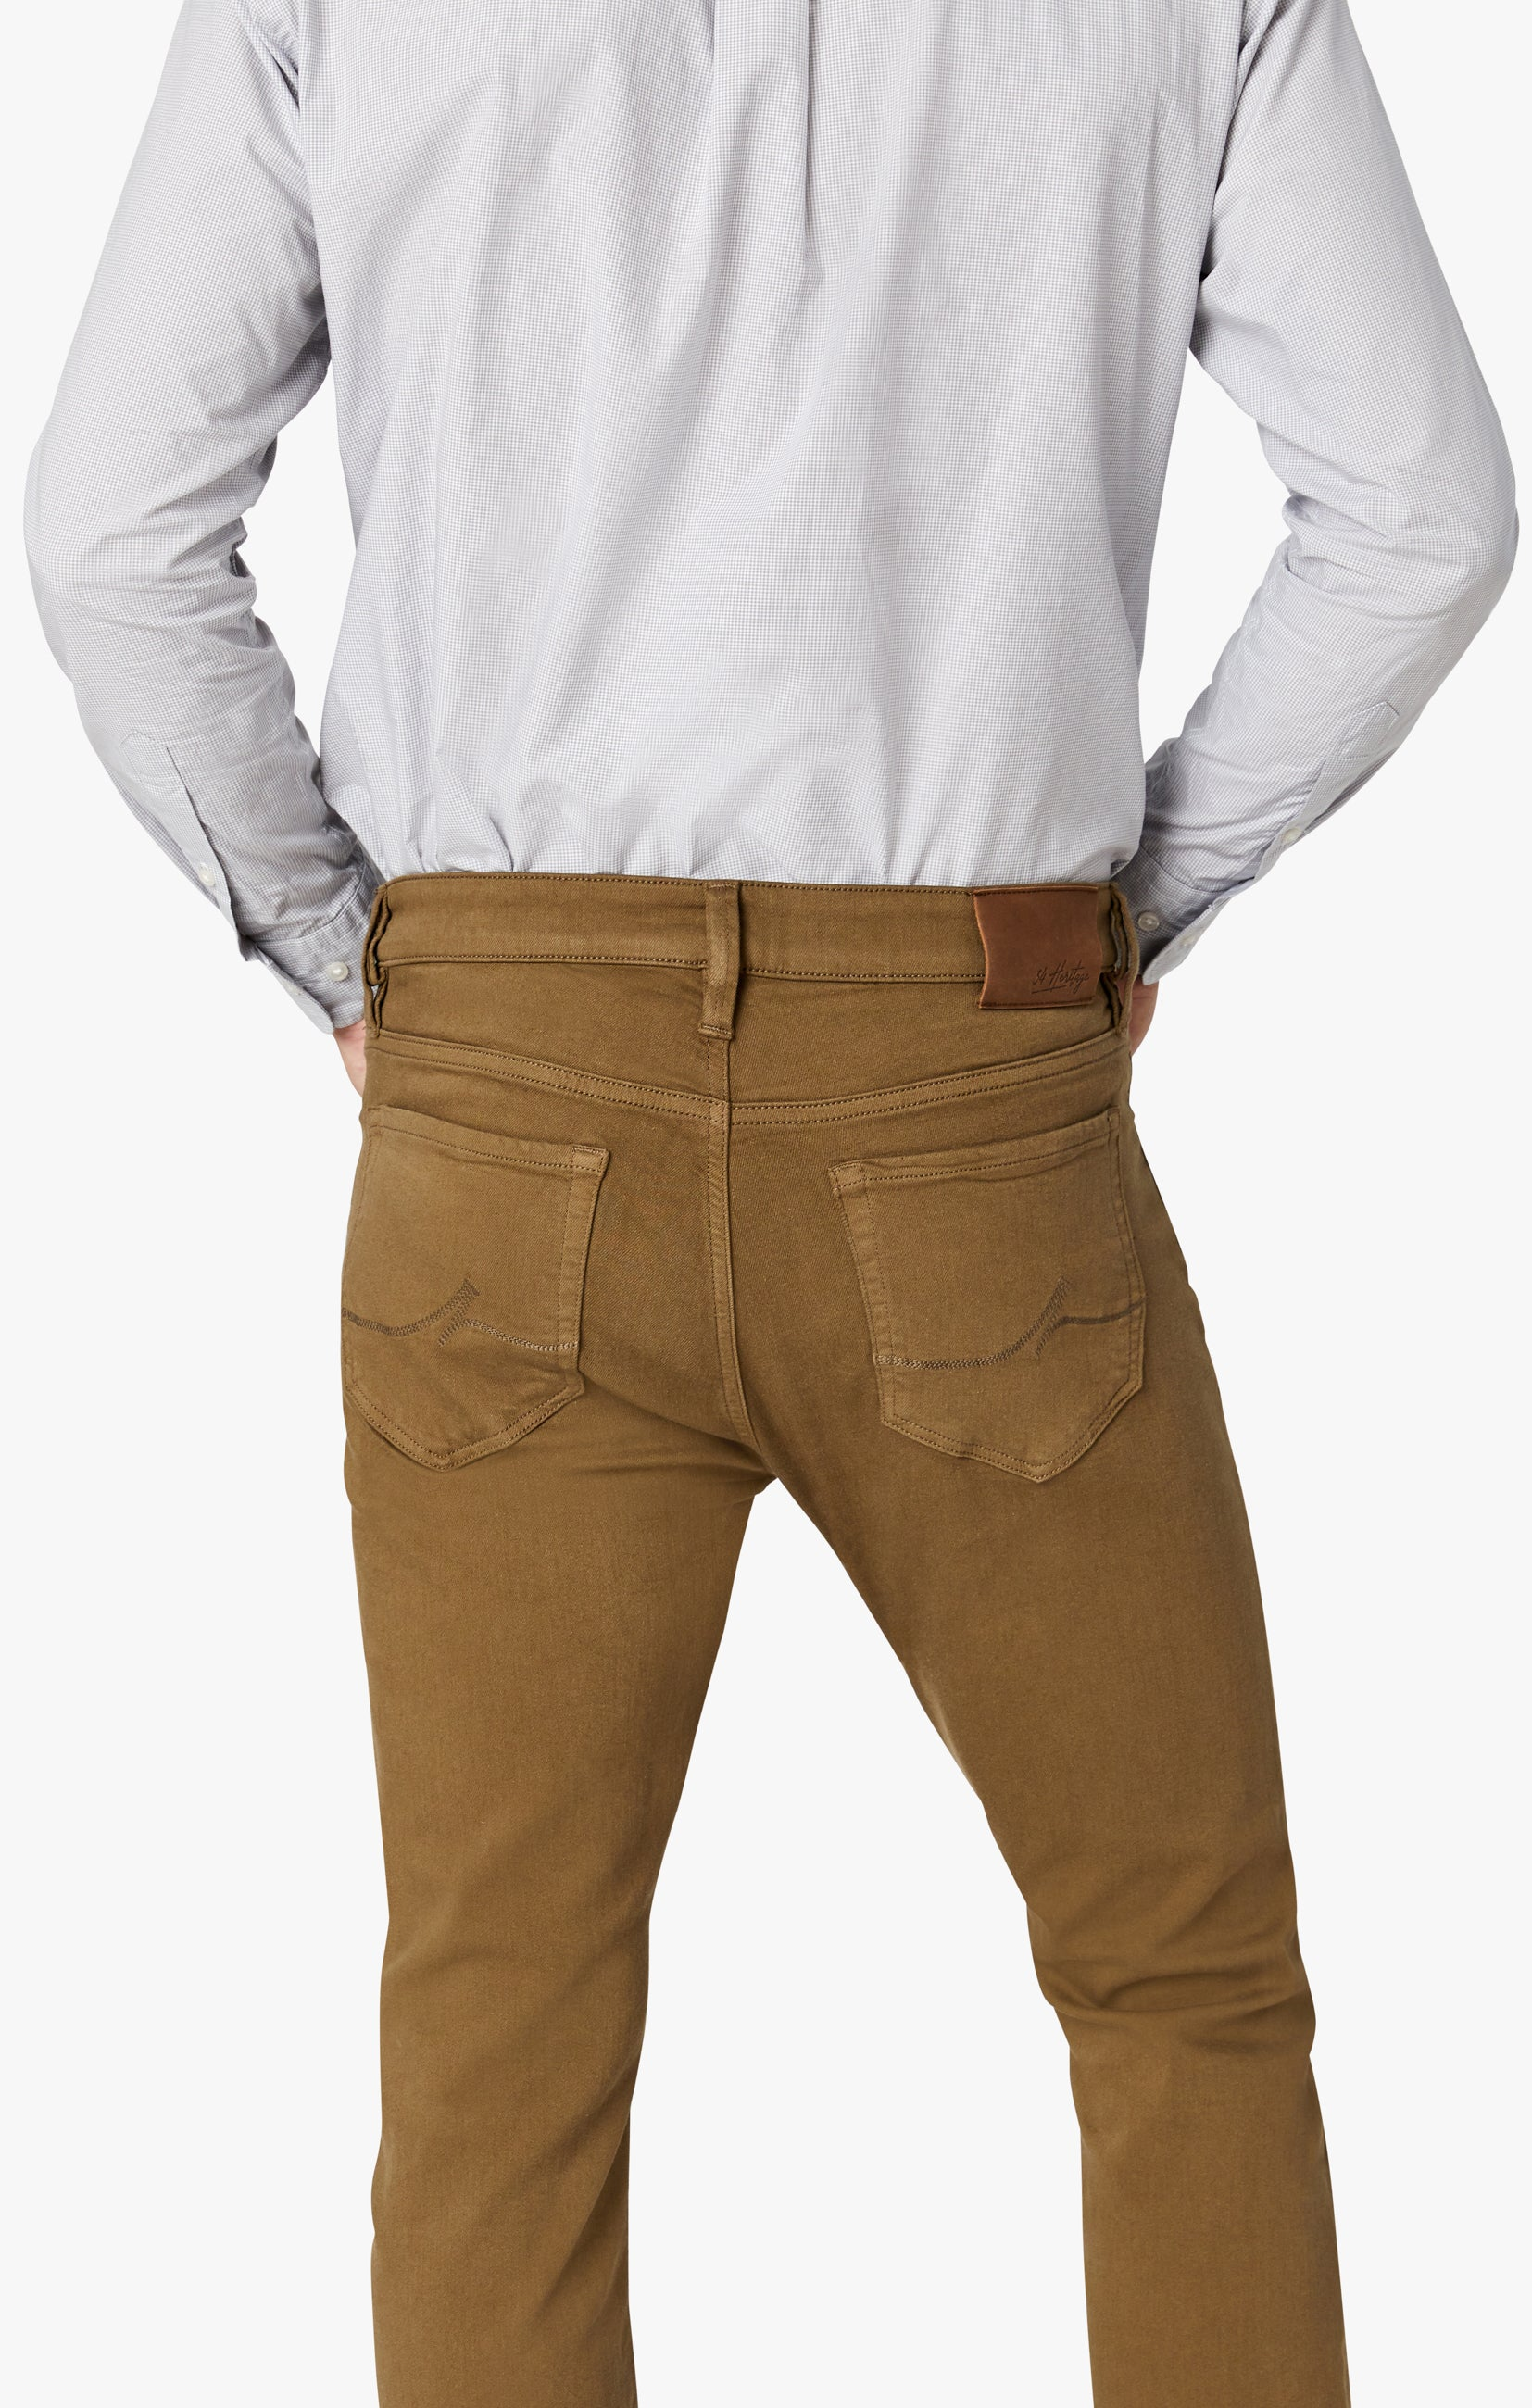 Charisma Relaxed Straight Pants in Tobacco Comfort Image 5